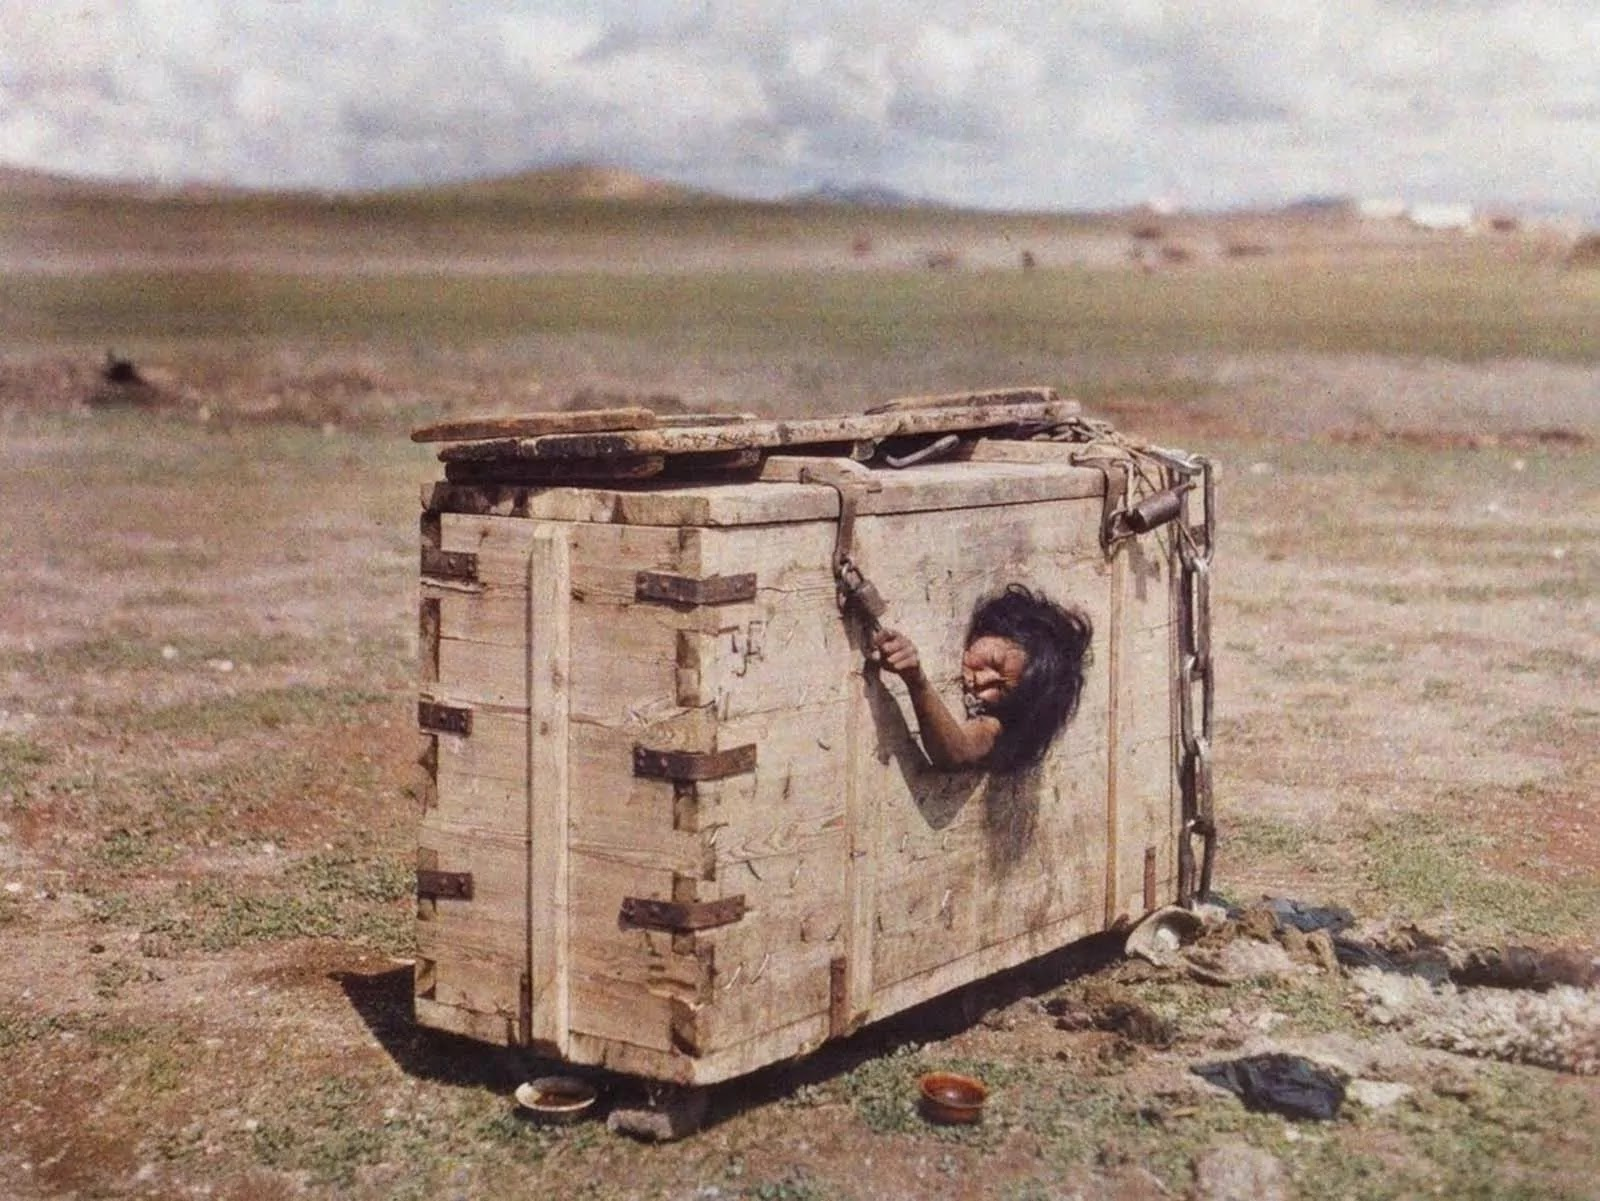 Shocking Photograph From 1913 Shows A Mongolian Woman Reaching Out From Her Crate Prison